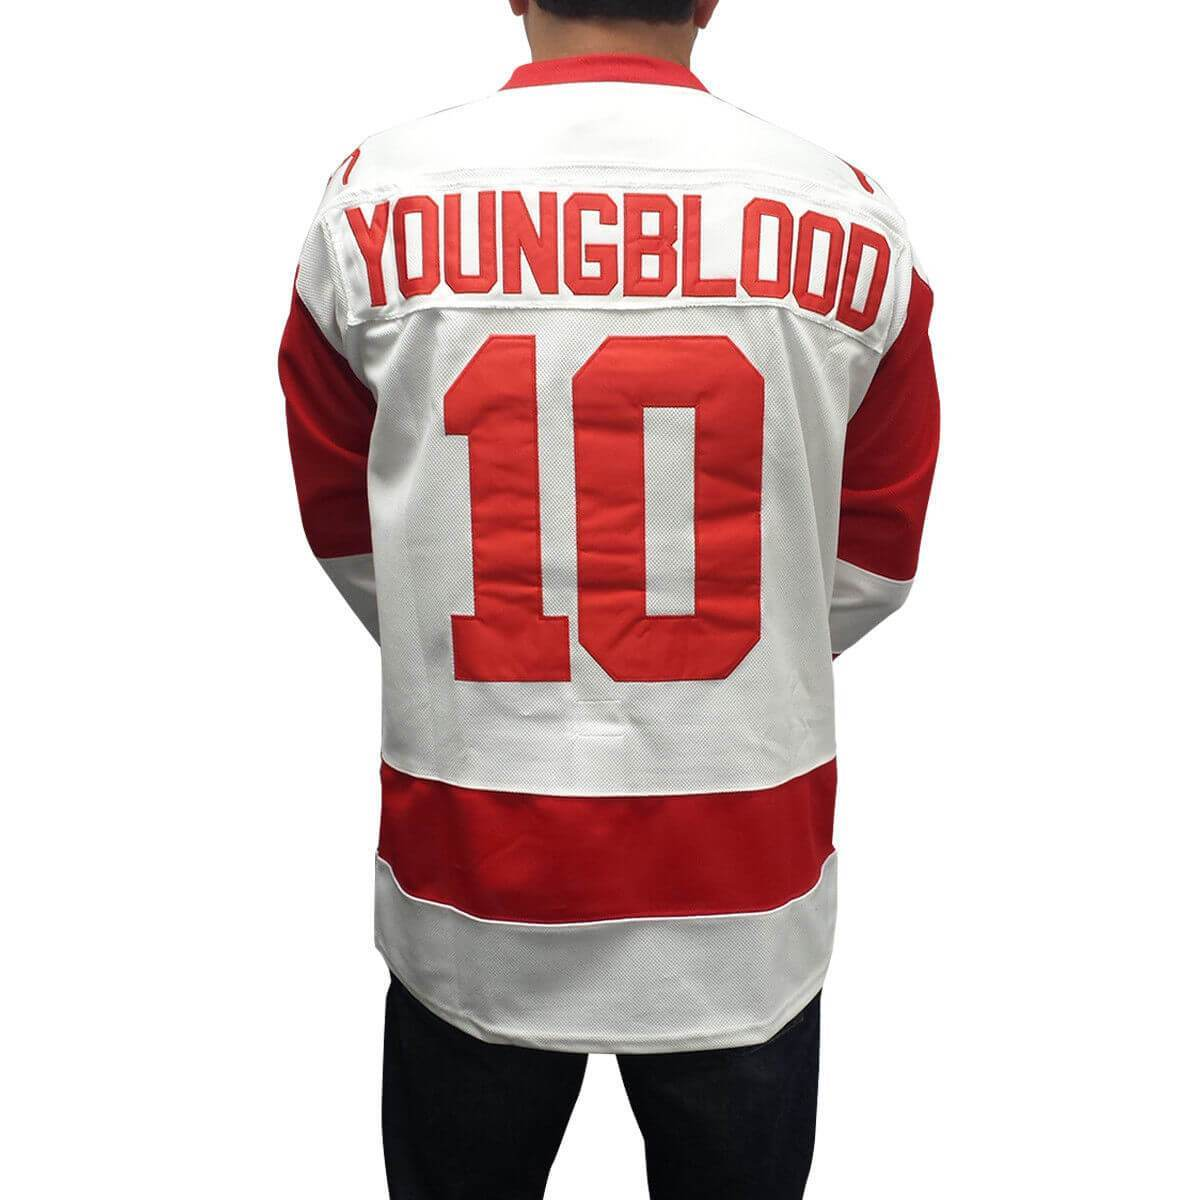 f8284f3c0e4 youngblood hockey jersey. youngblood hockey jersey · Rob Lowe Mustangs ...